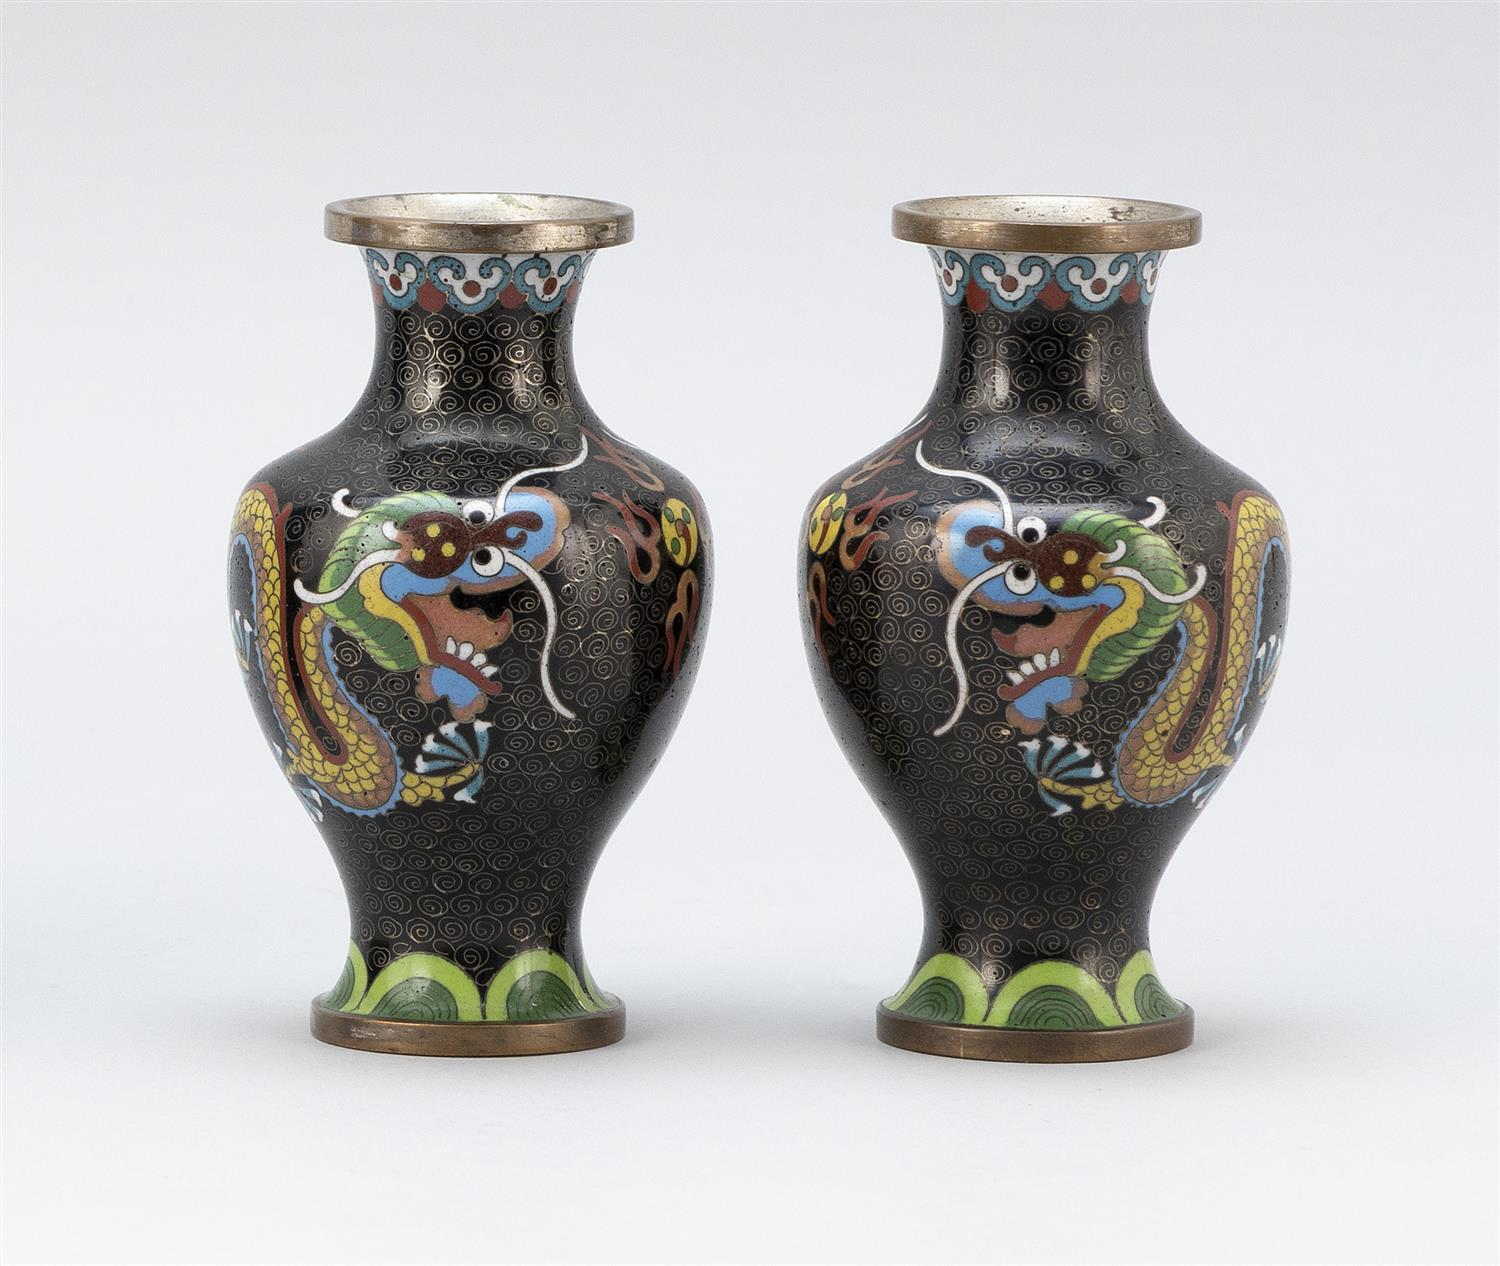 "PAIR OF JAPANESE CLOISONNÉ ENAMEL VASES In baluster form, with dragon and fiery pearl decoration on a black ground. Heights 5""."